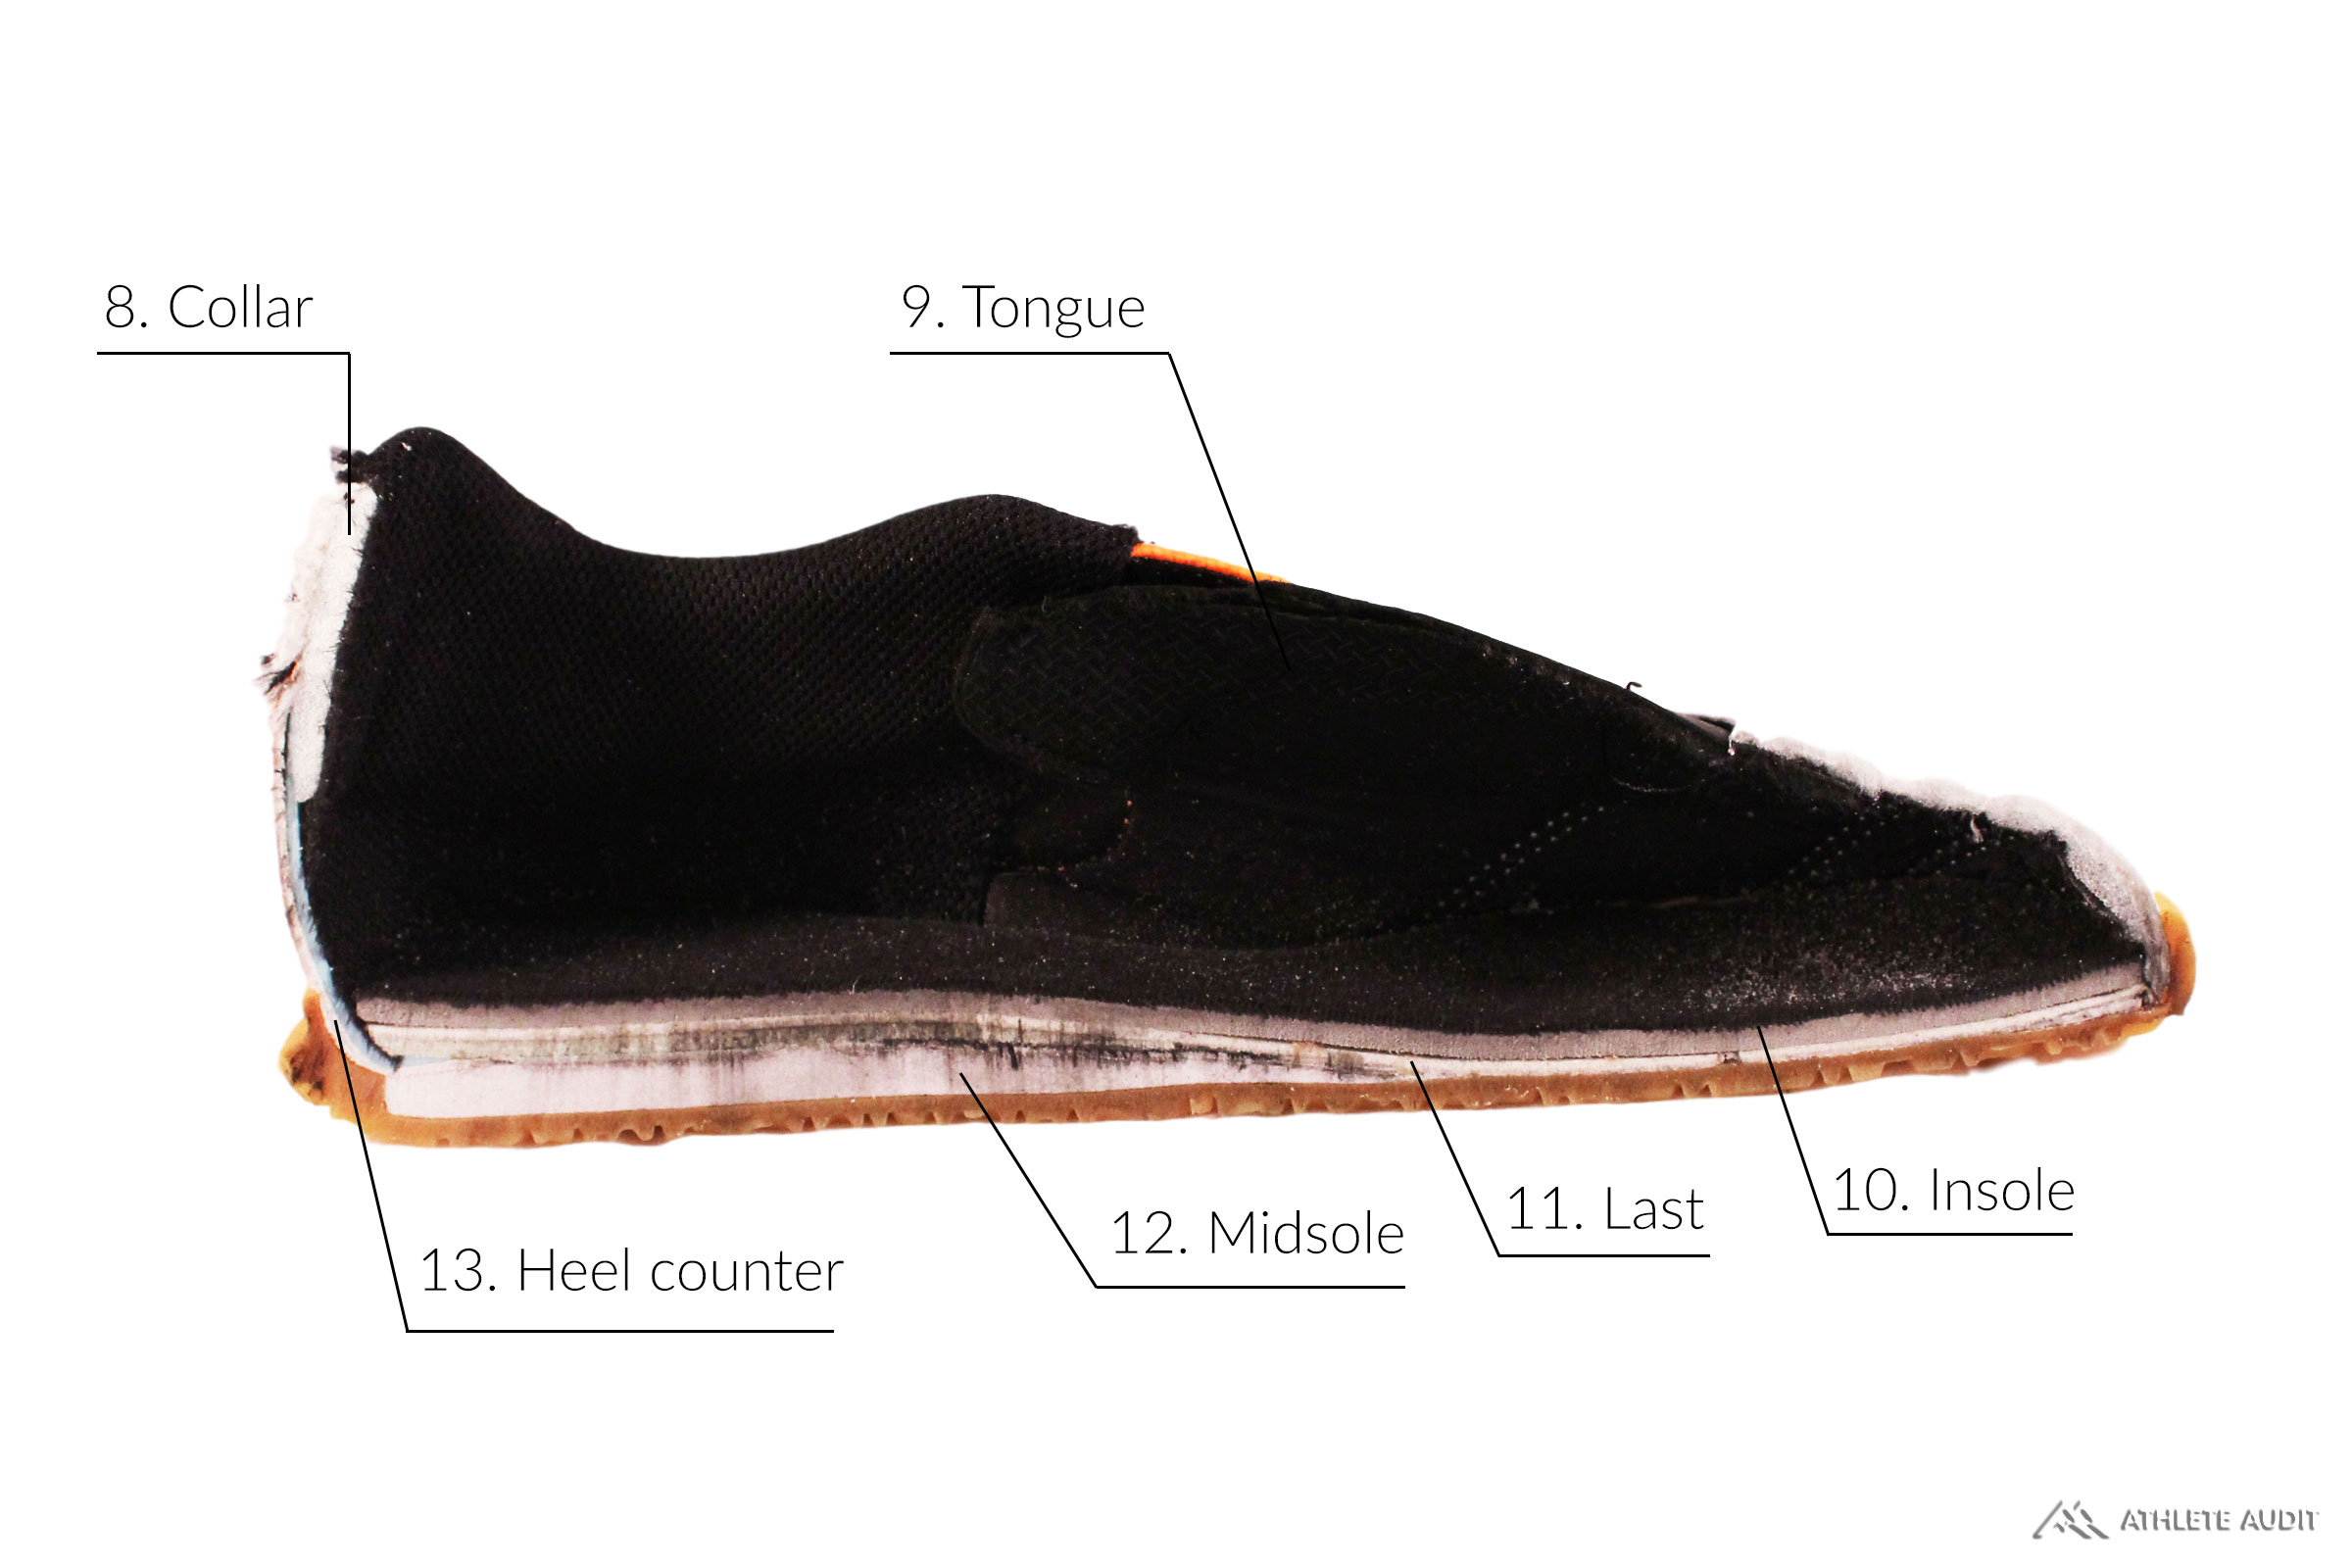 Parts of an Indoor Soccer Shoe - Inside - Anatomy of an Athletic Shoe - Athlete Audit